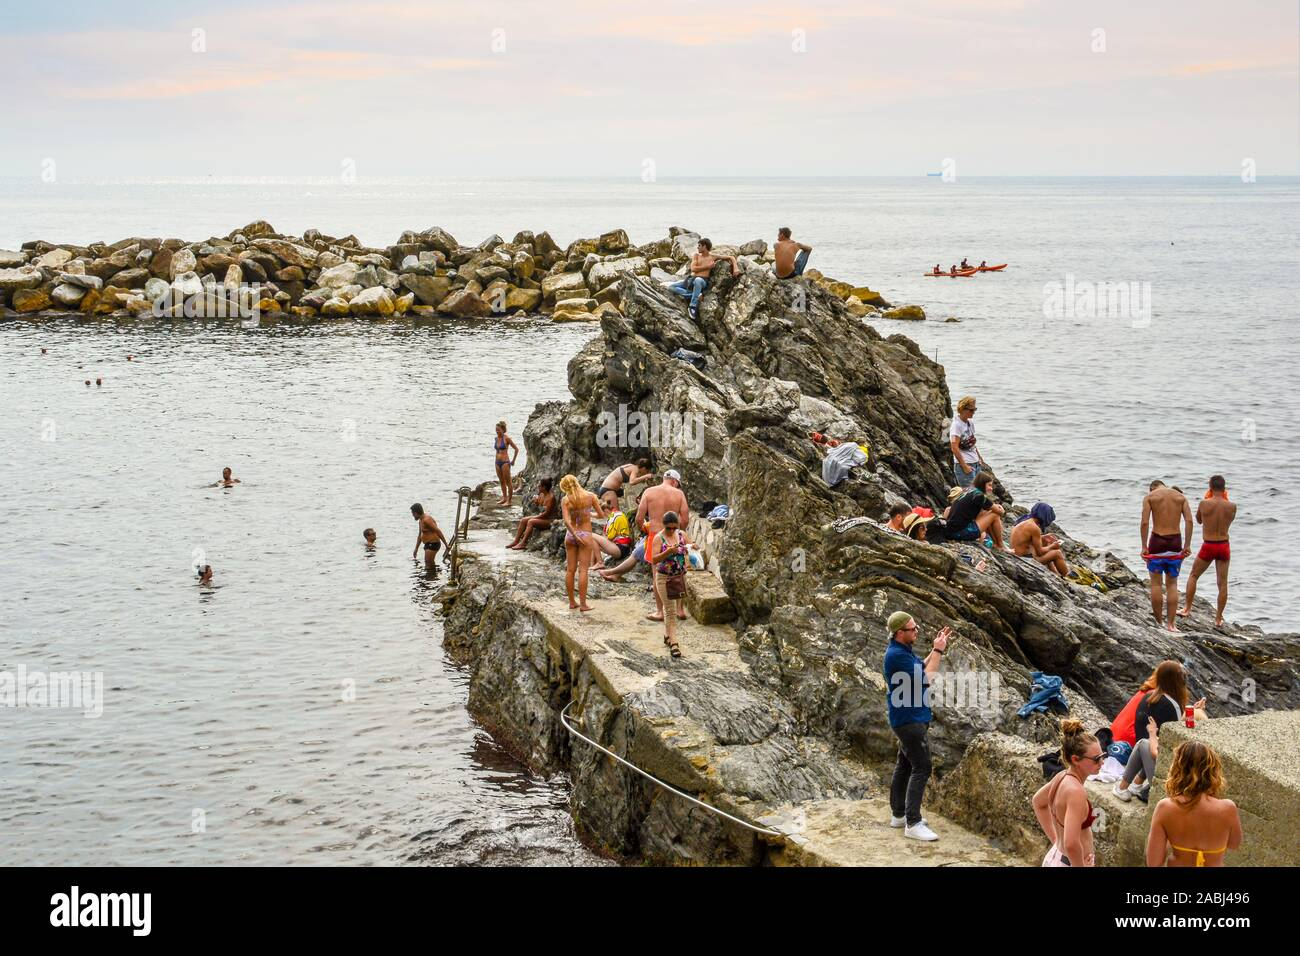 Tourists swim the rocky coastline of the Ligurian Sea off the village of Manarola, in the Cinque Terre region of Italy on an overcast late afternoon Stock Photo